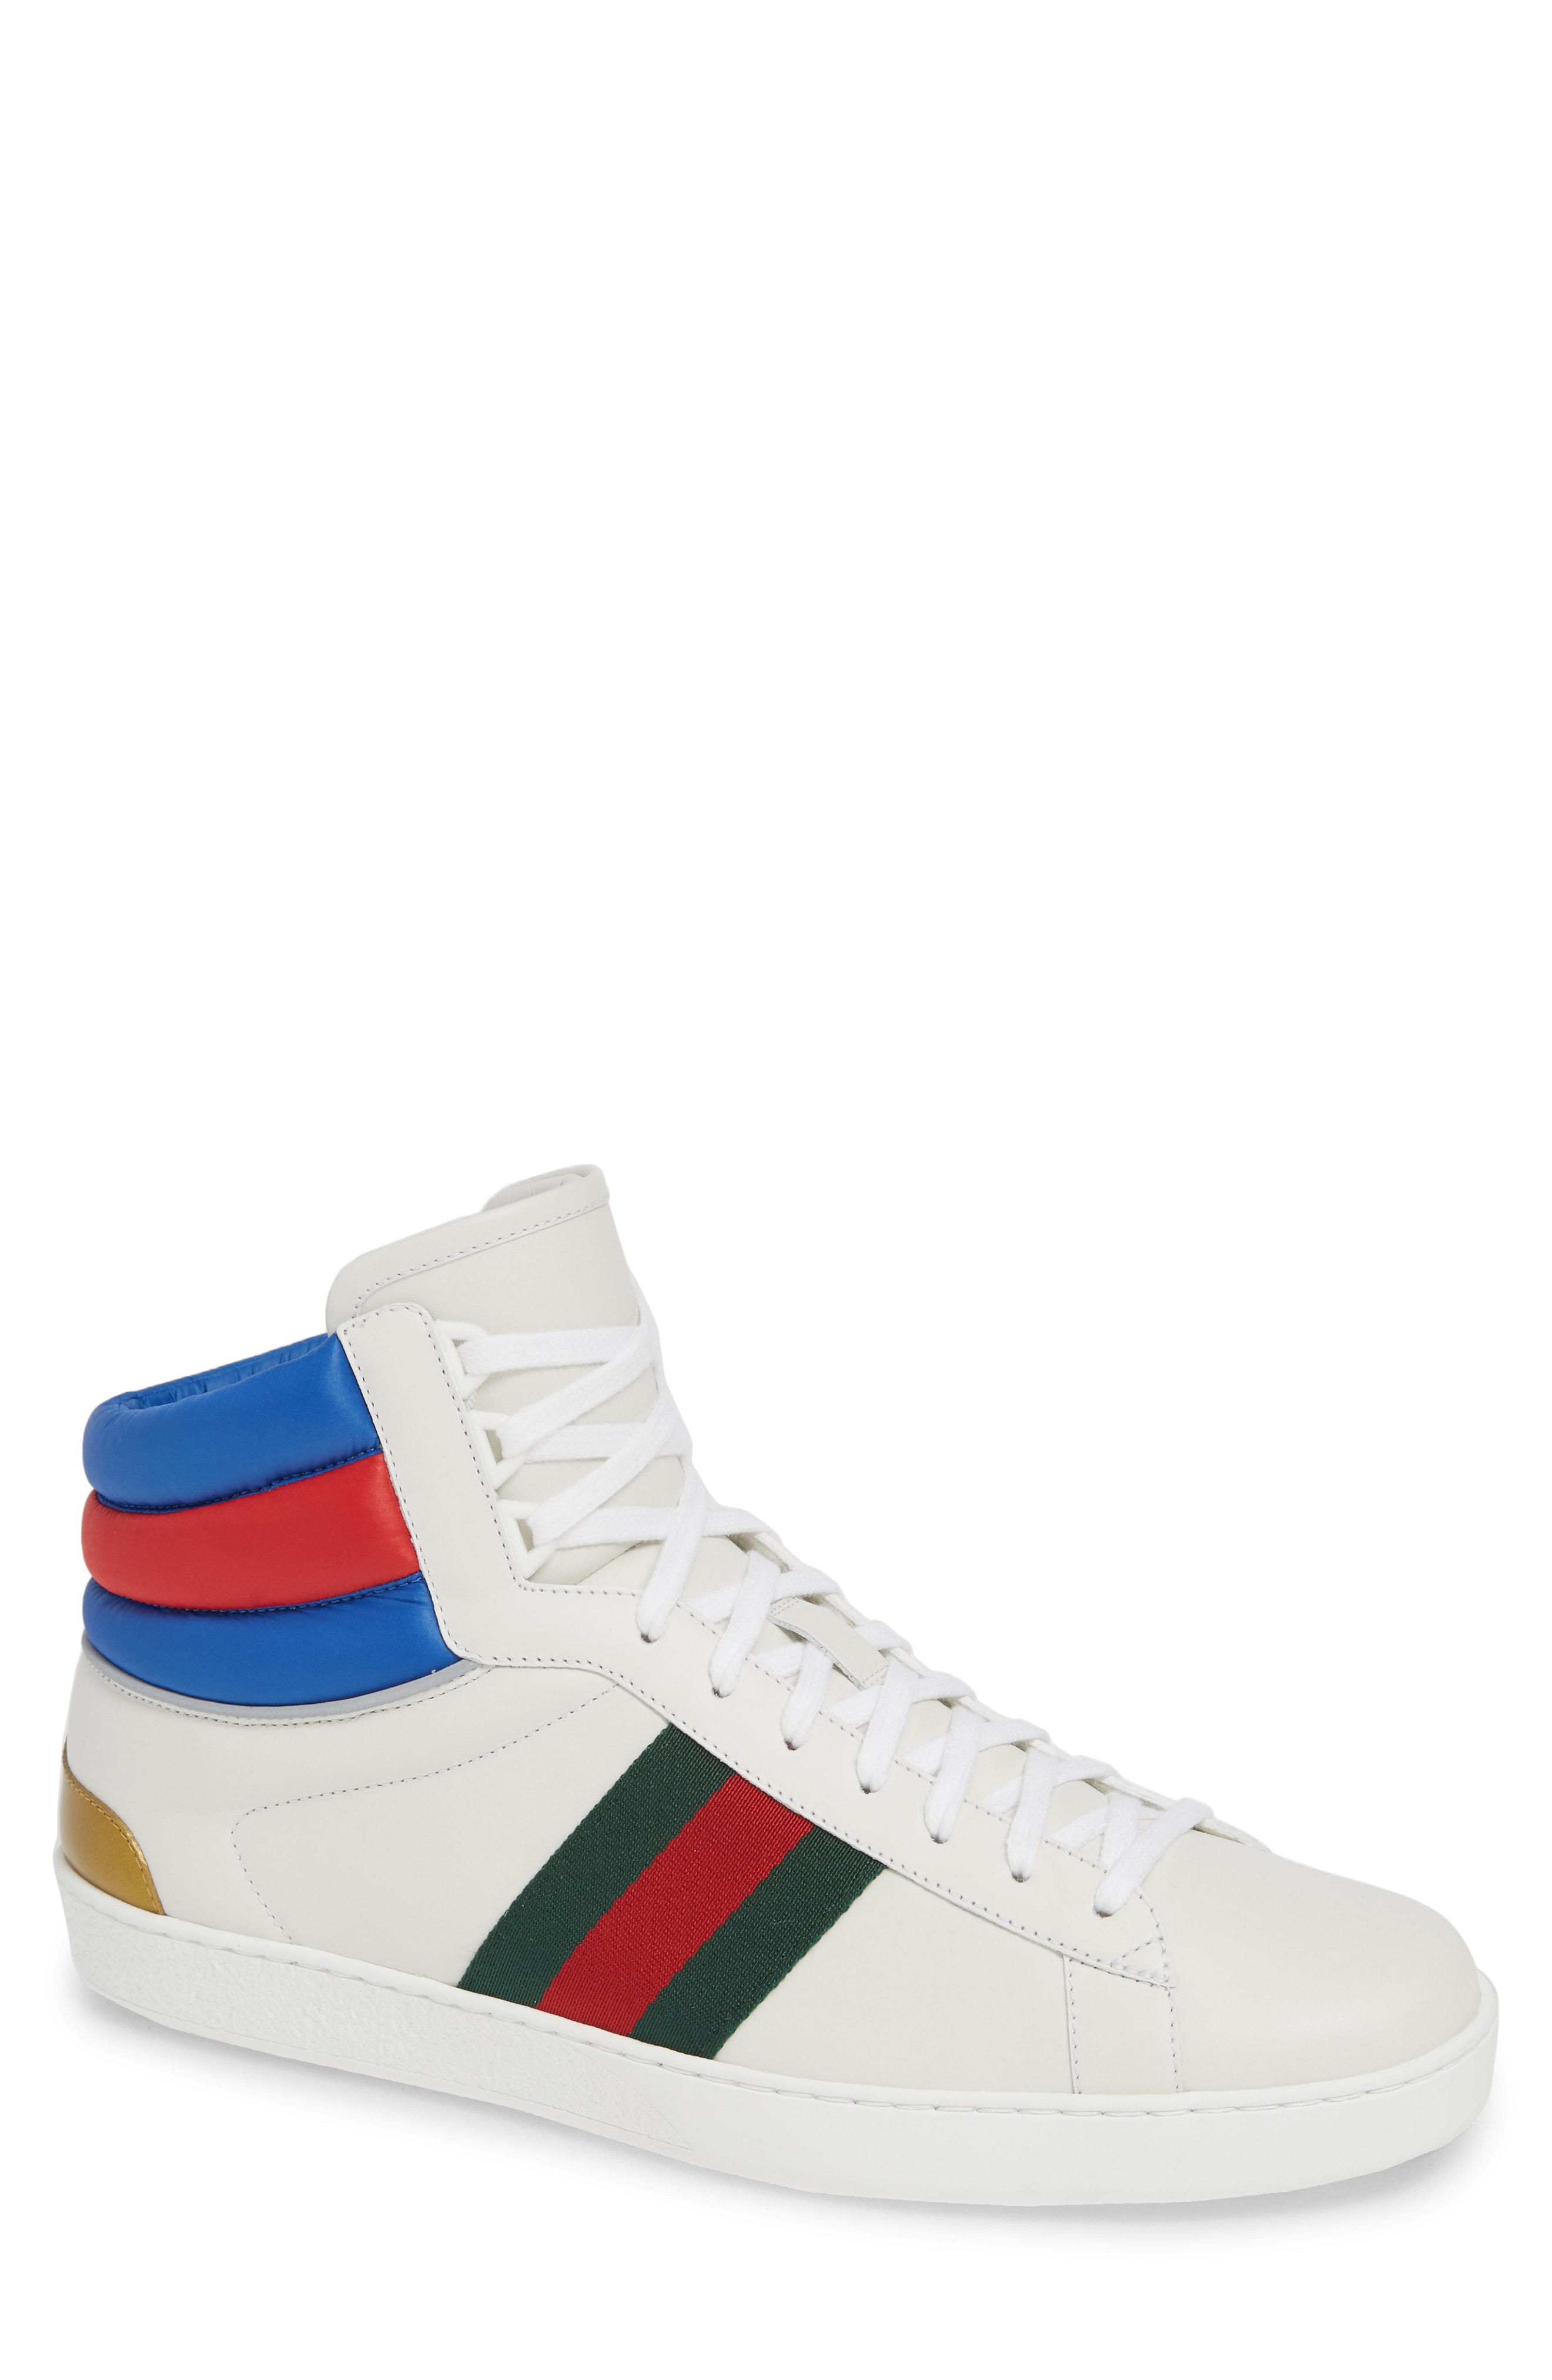 b4218a172f0 Lyst - Gucci New Ace Stripe High Top Sneaker in White for Men